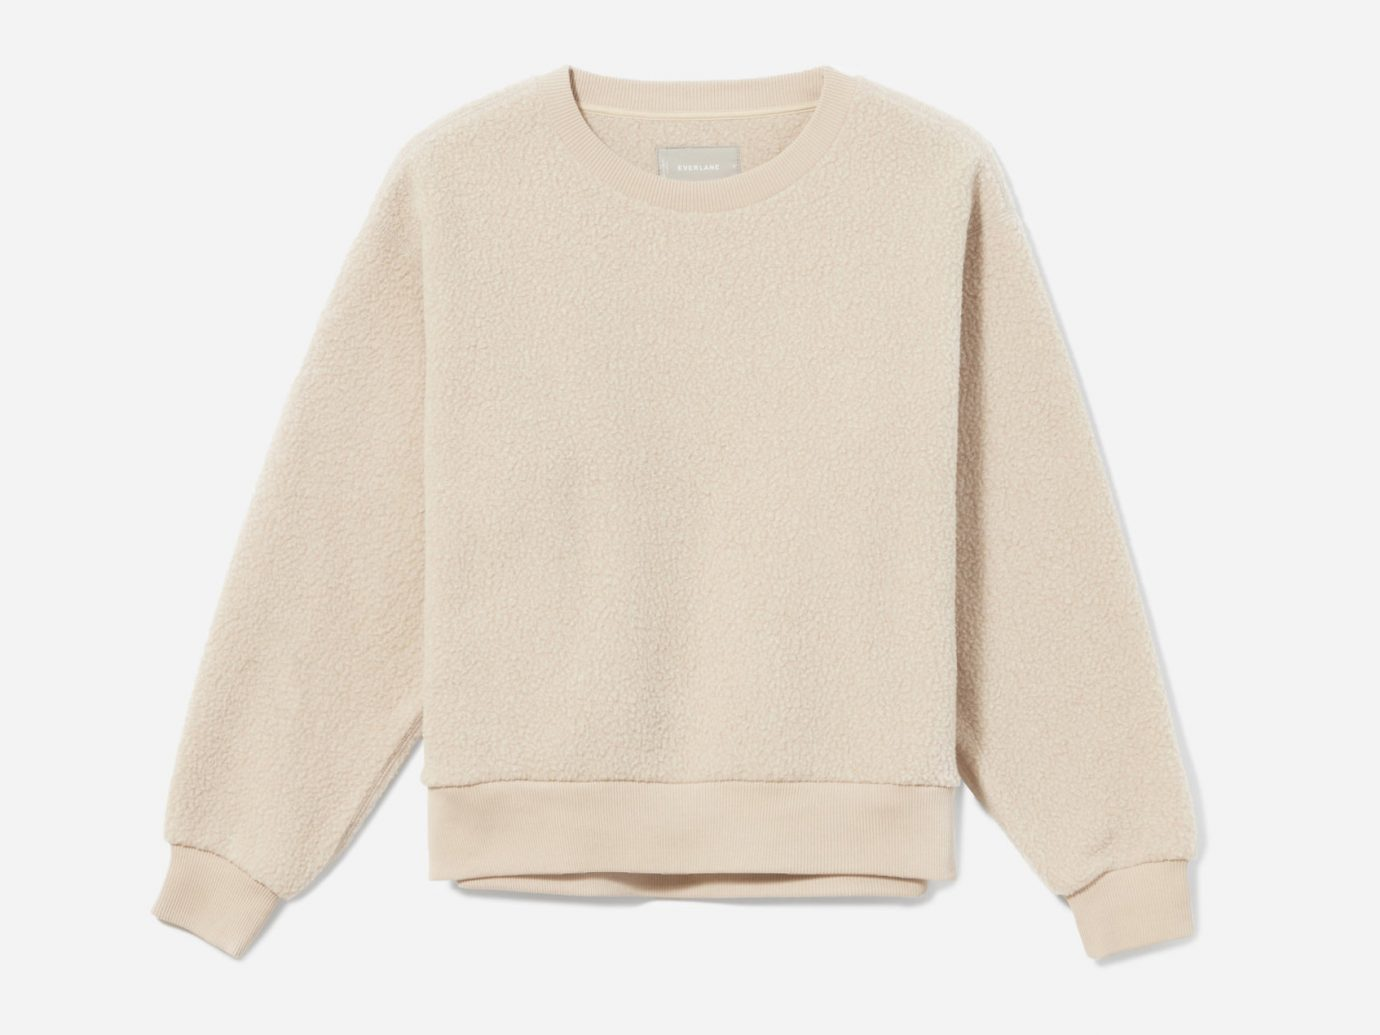 The ReNew Fleece Sweatshirt